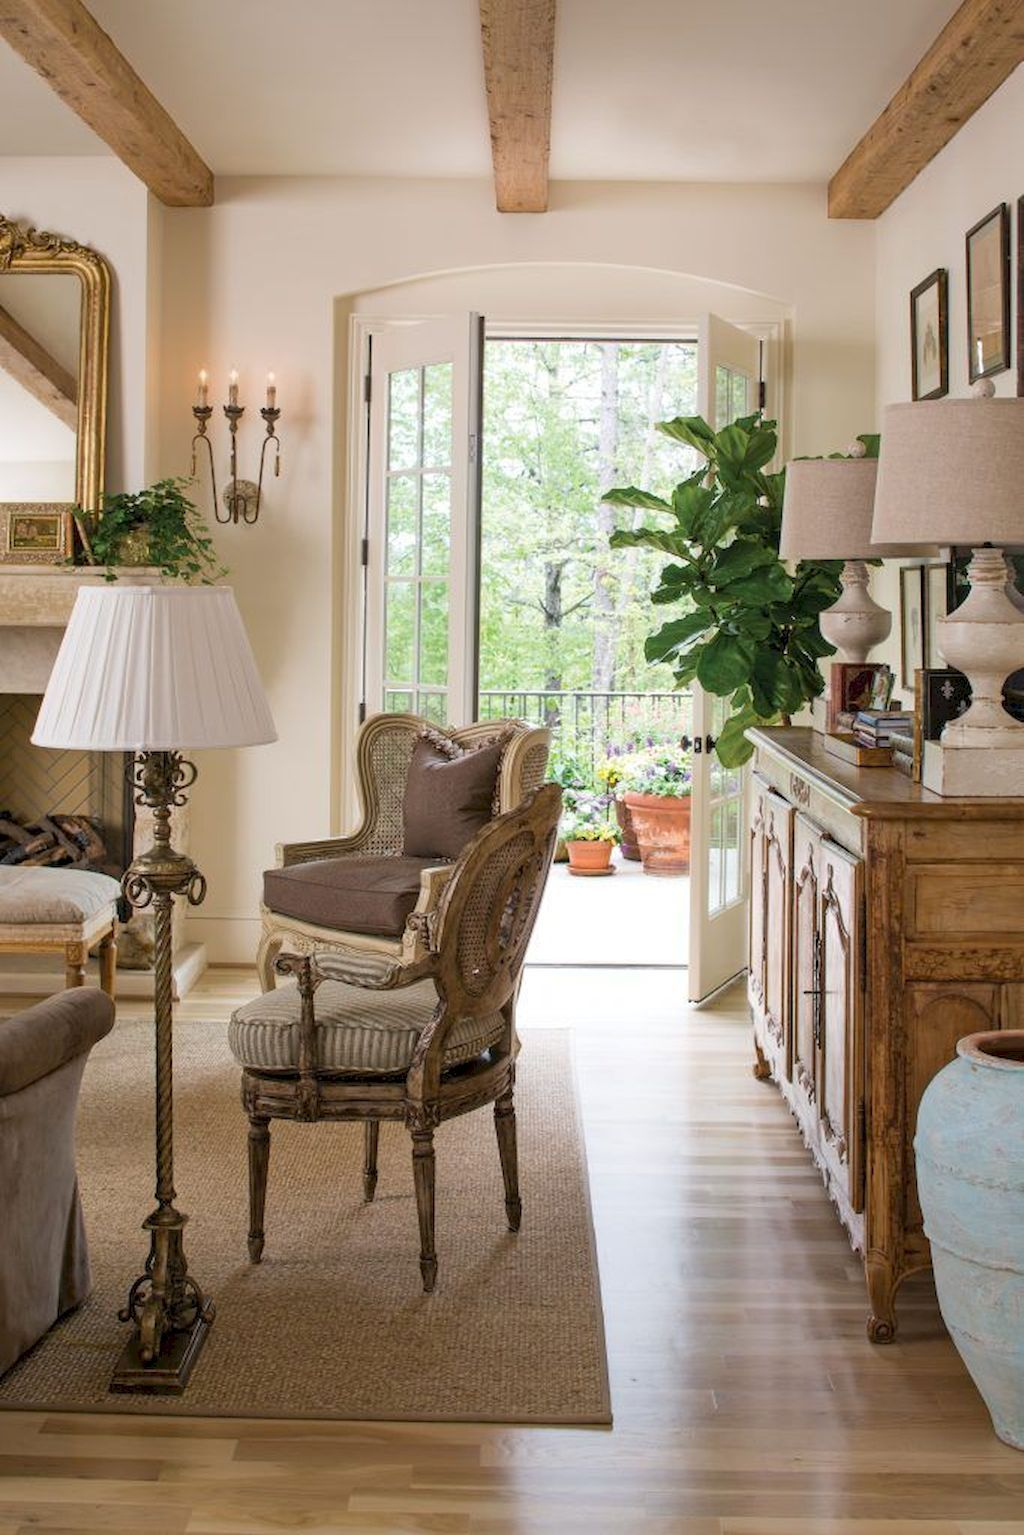 60 Charming French Country Home Decor Ideas French Country Decorating Living Room French Country Living Room Country Living Room